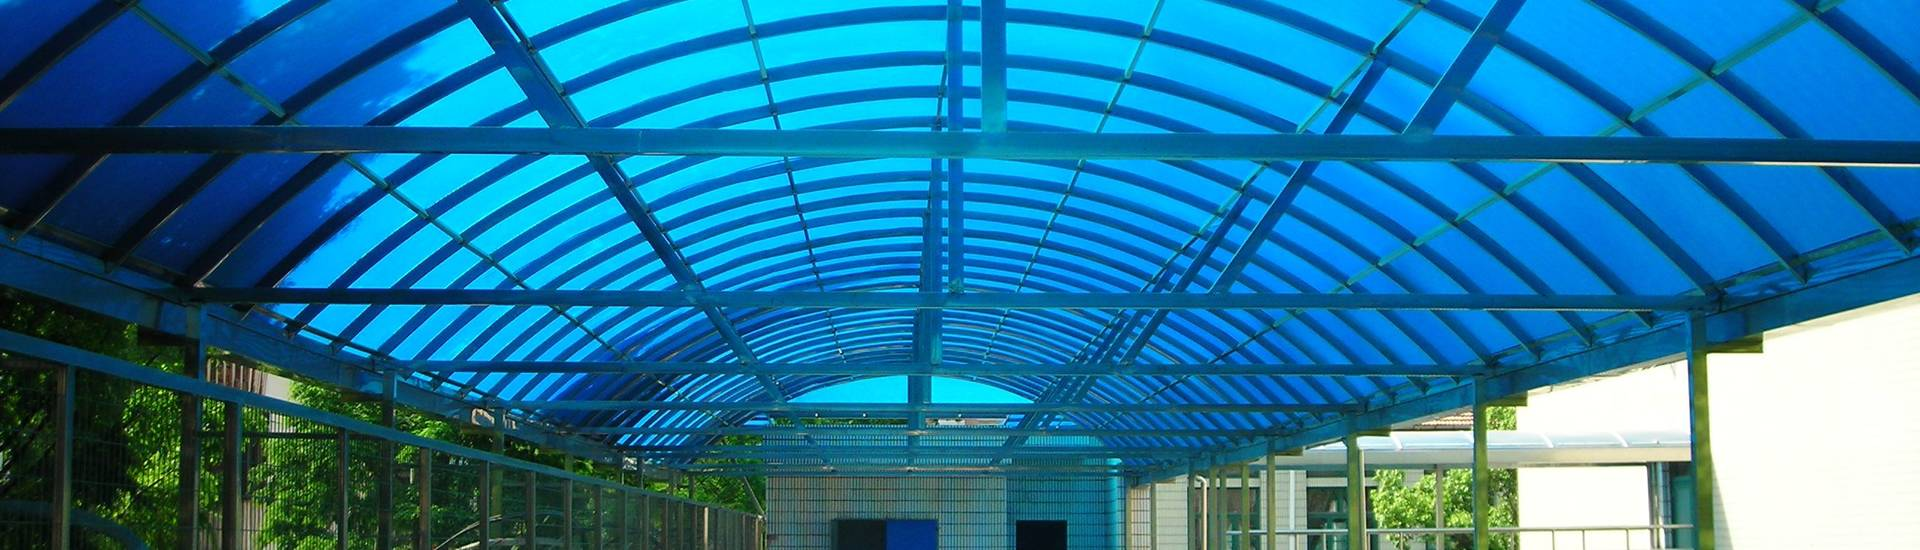 Blue and green twin wall polycarbonate sheets are covering the side of railway for shelter.